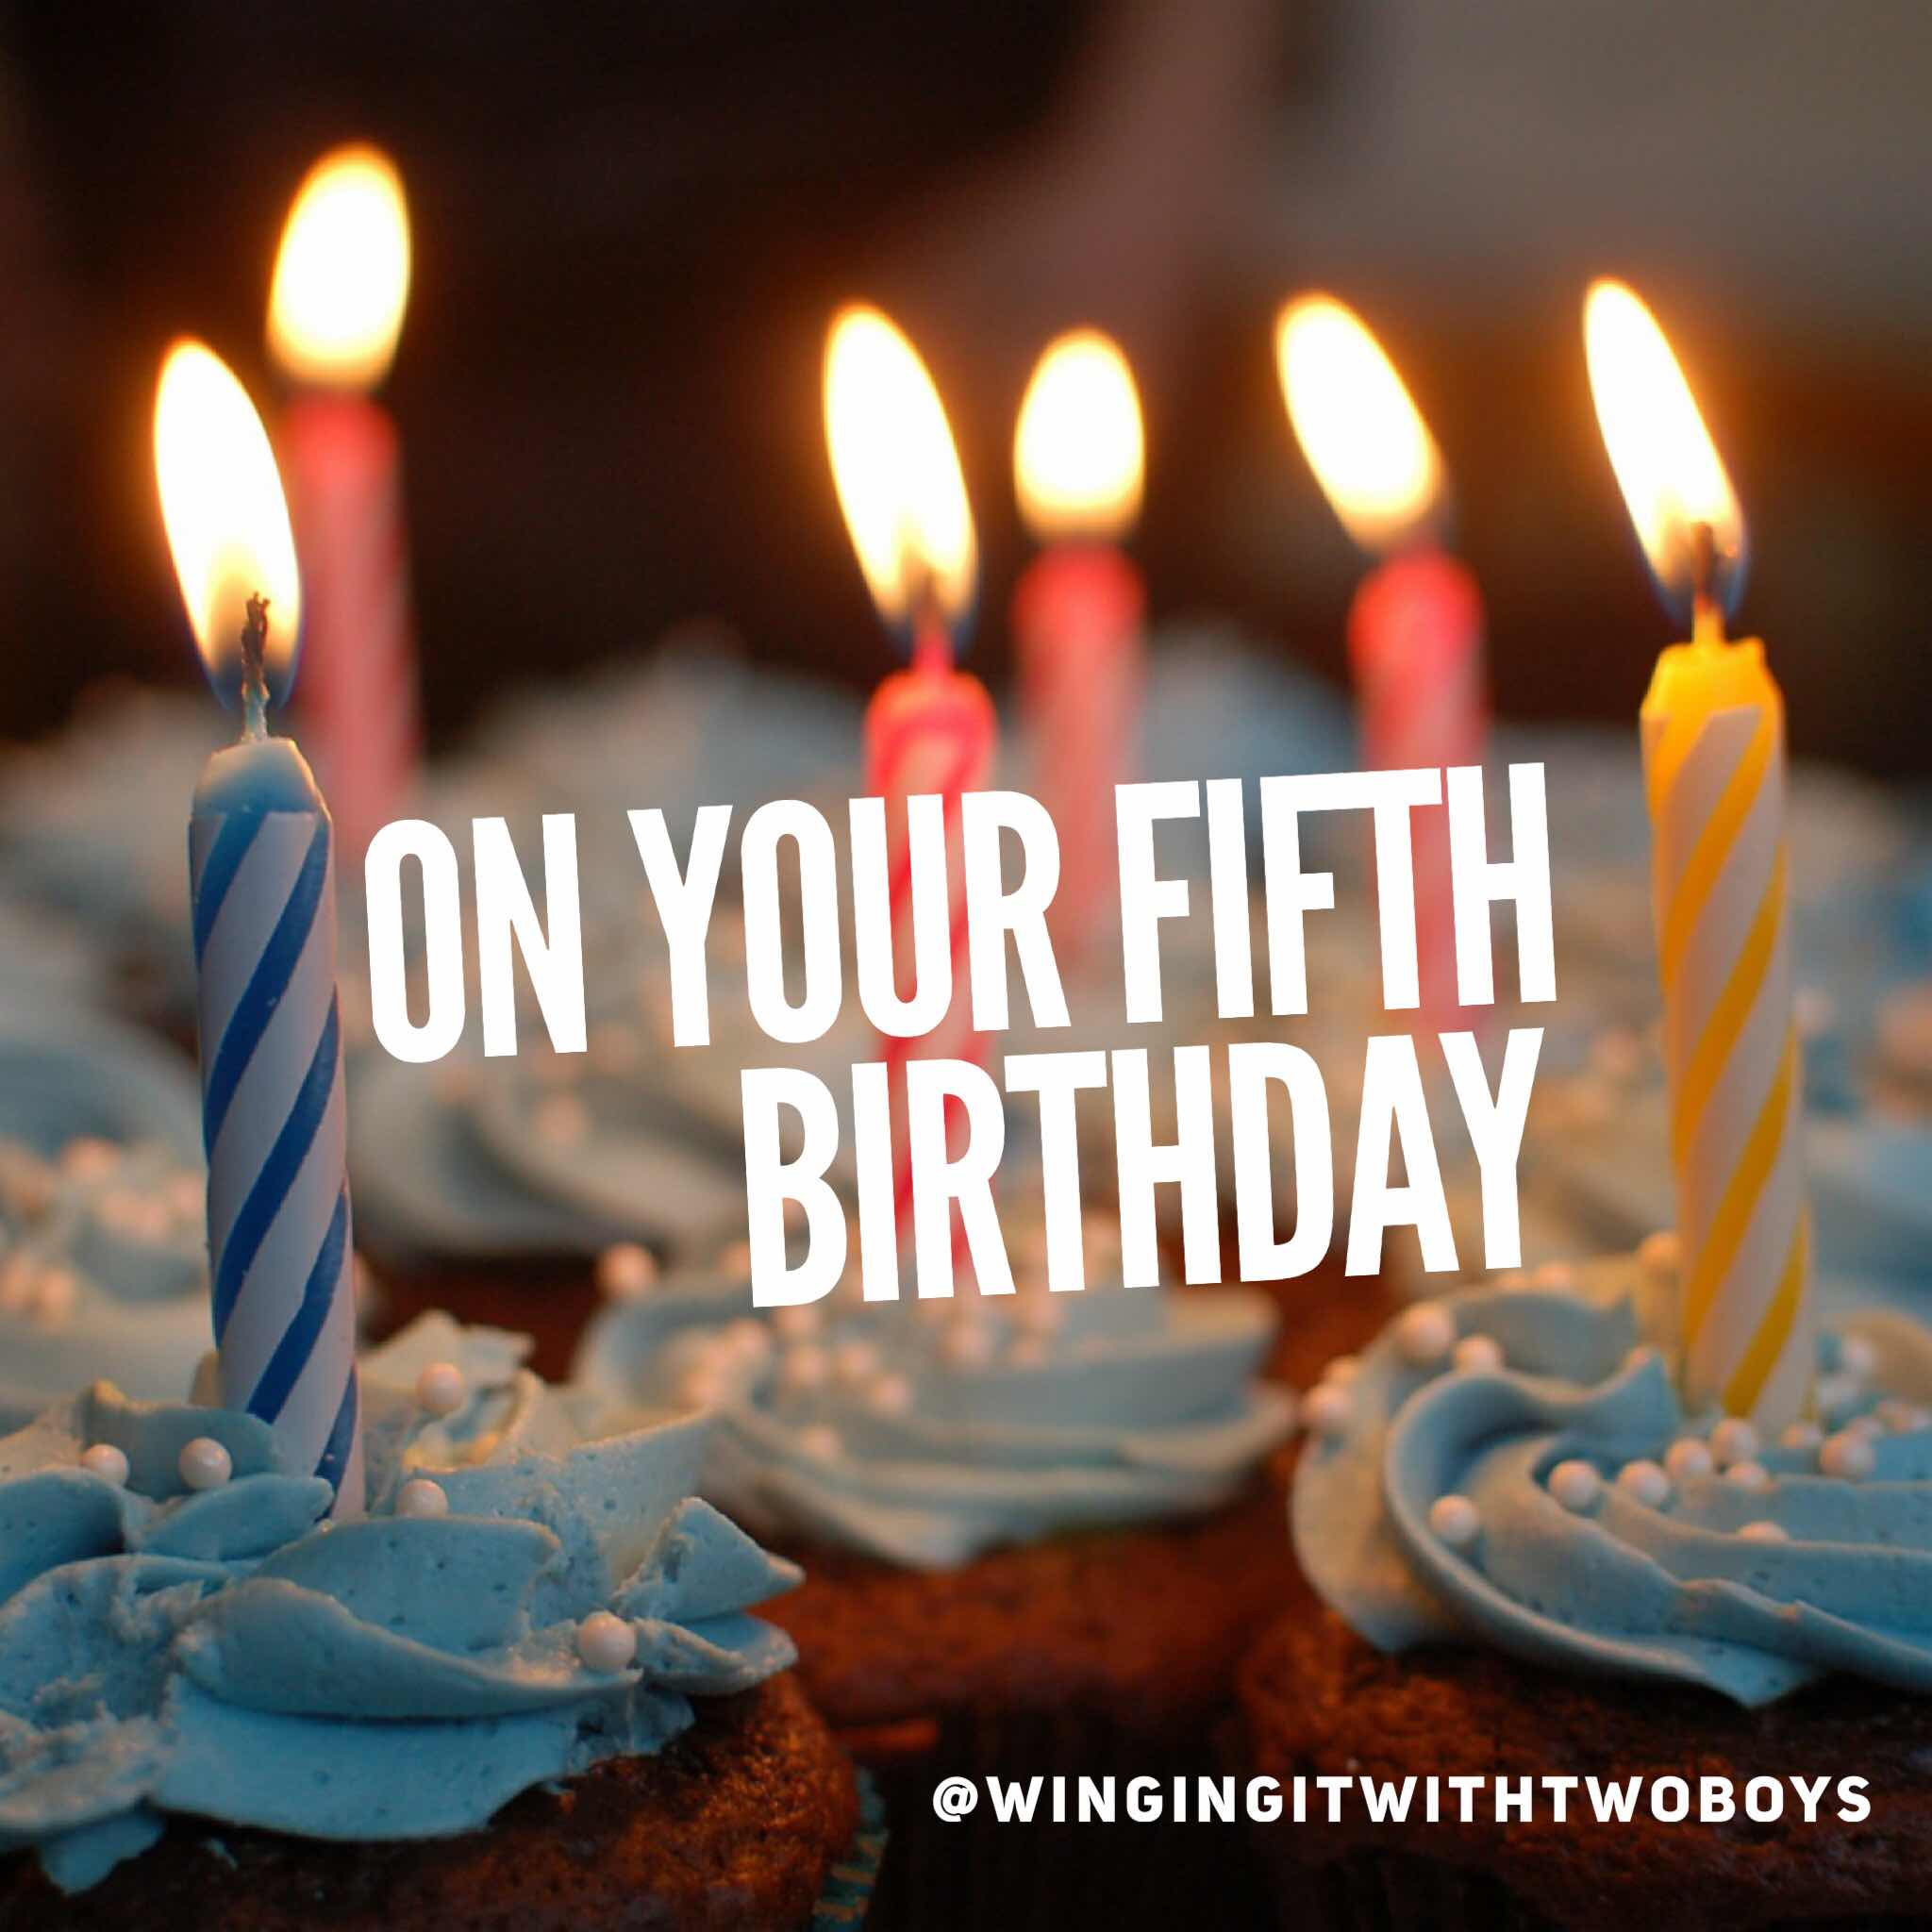 On your fifth birthday